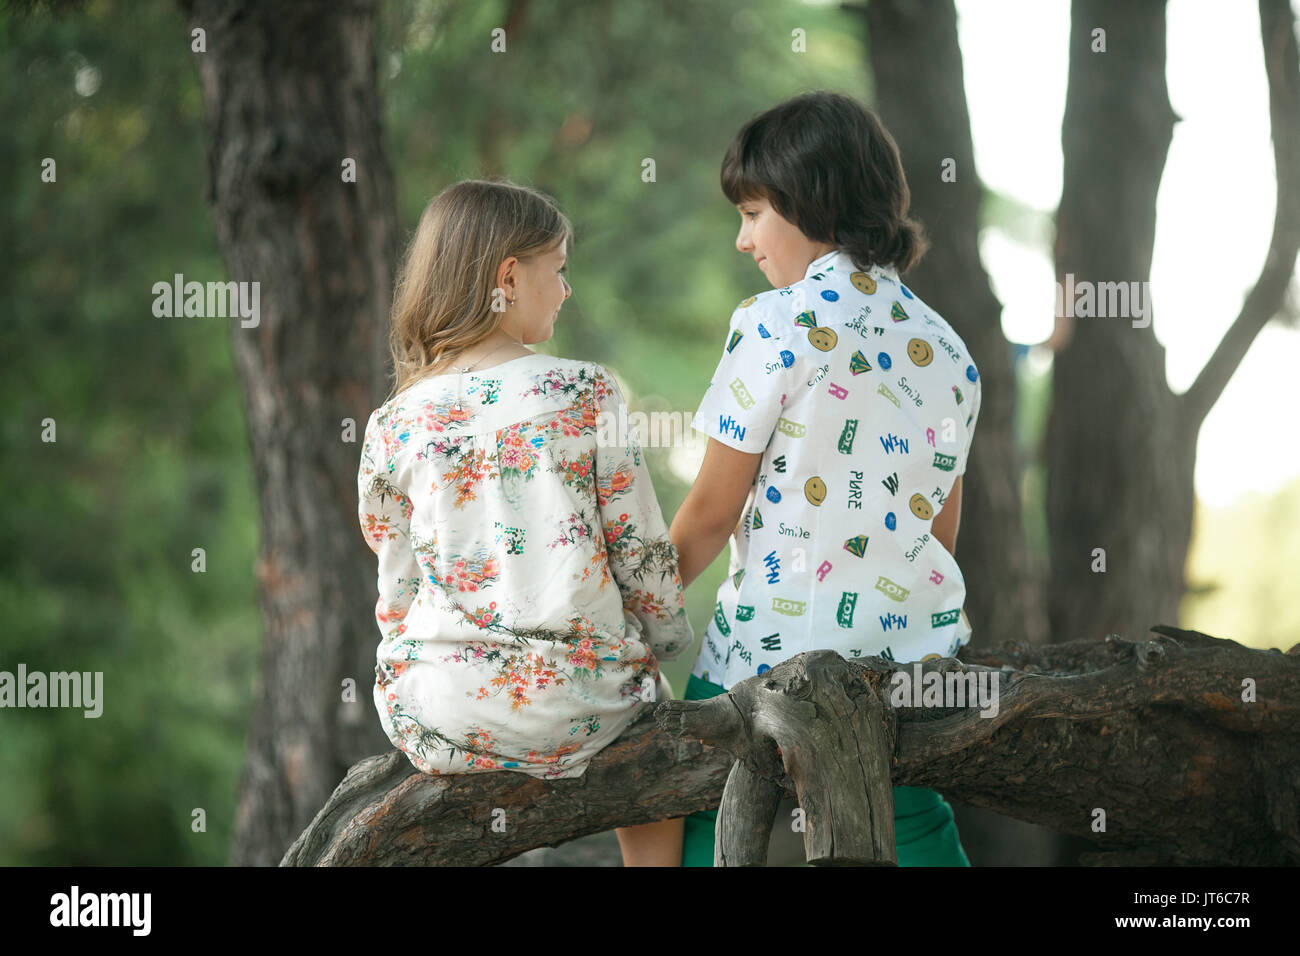 Little Girl And Boy Sit Side By Side On Tree Branch Holding Hands